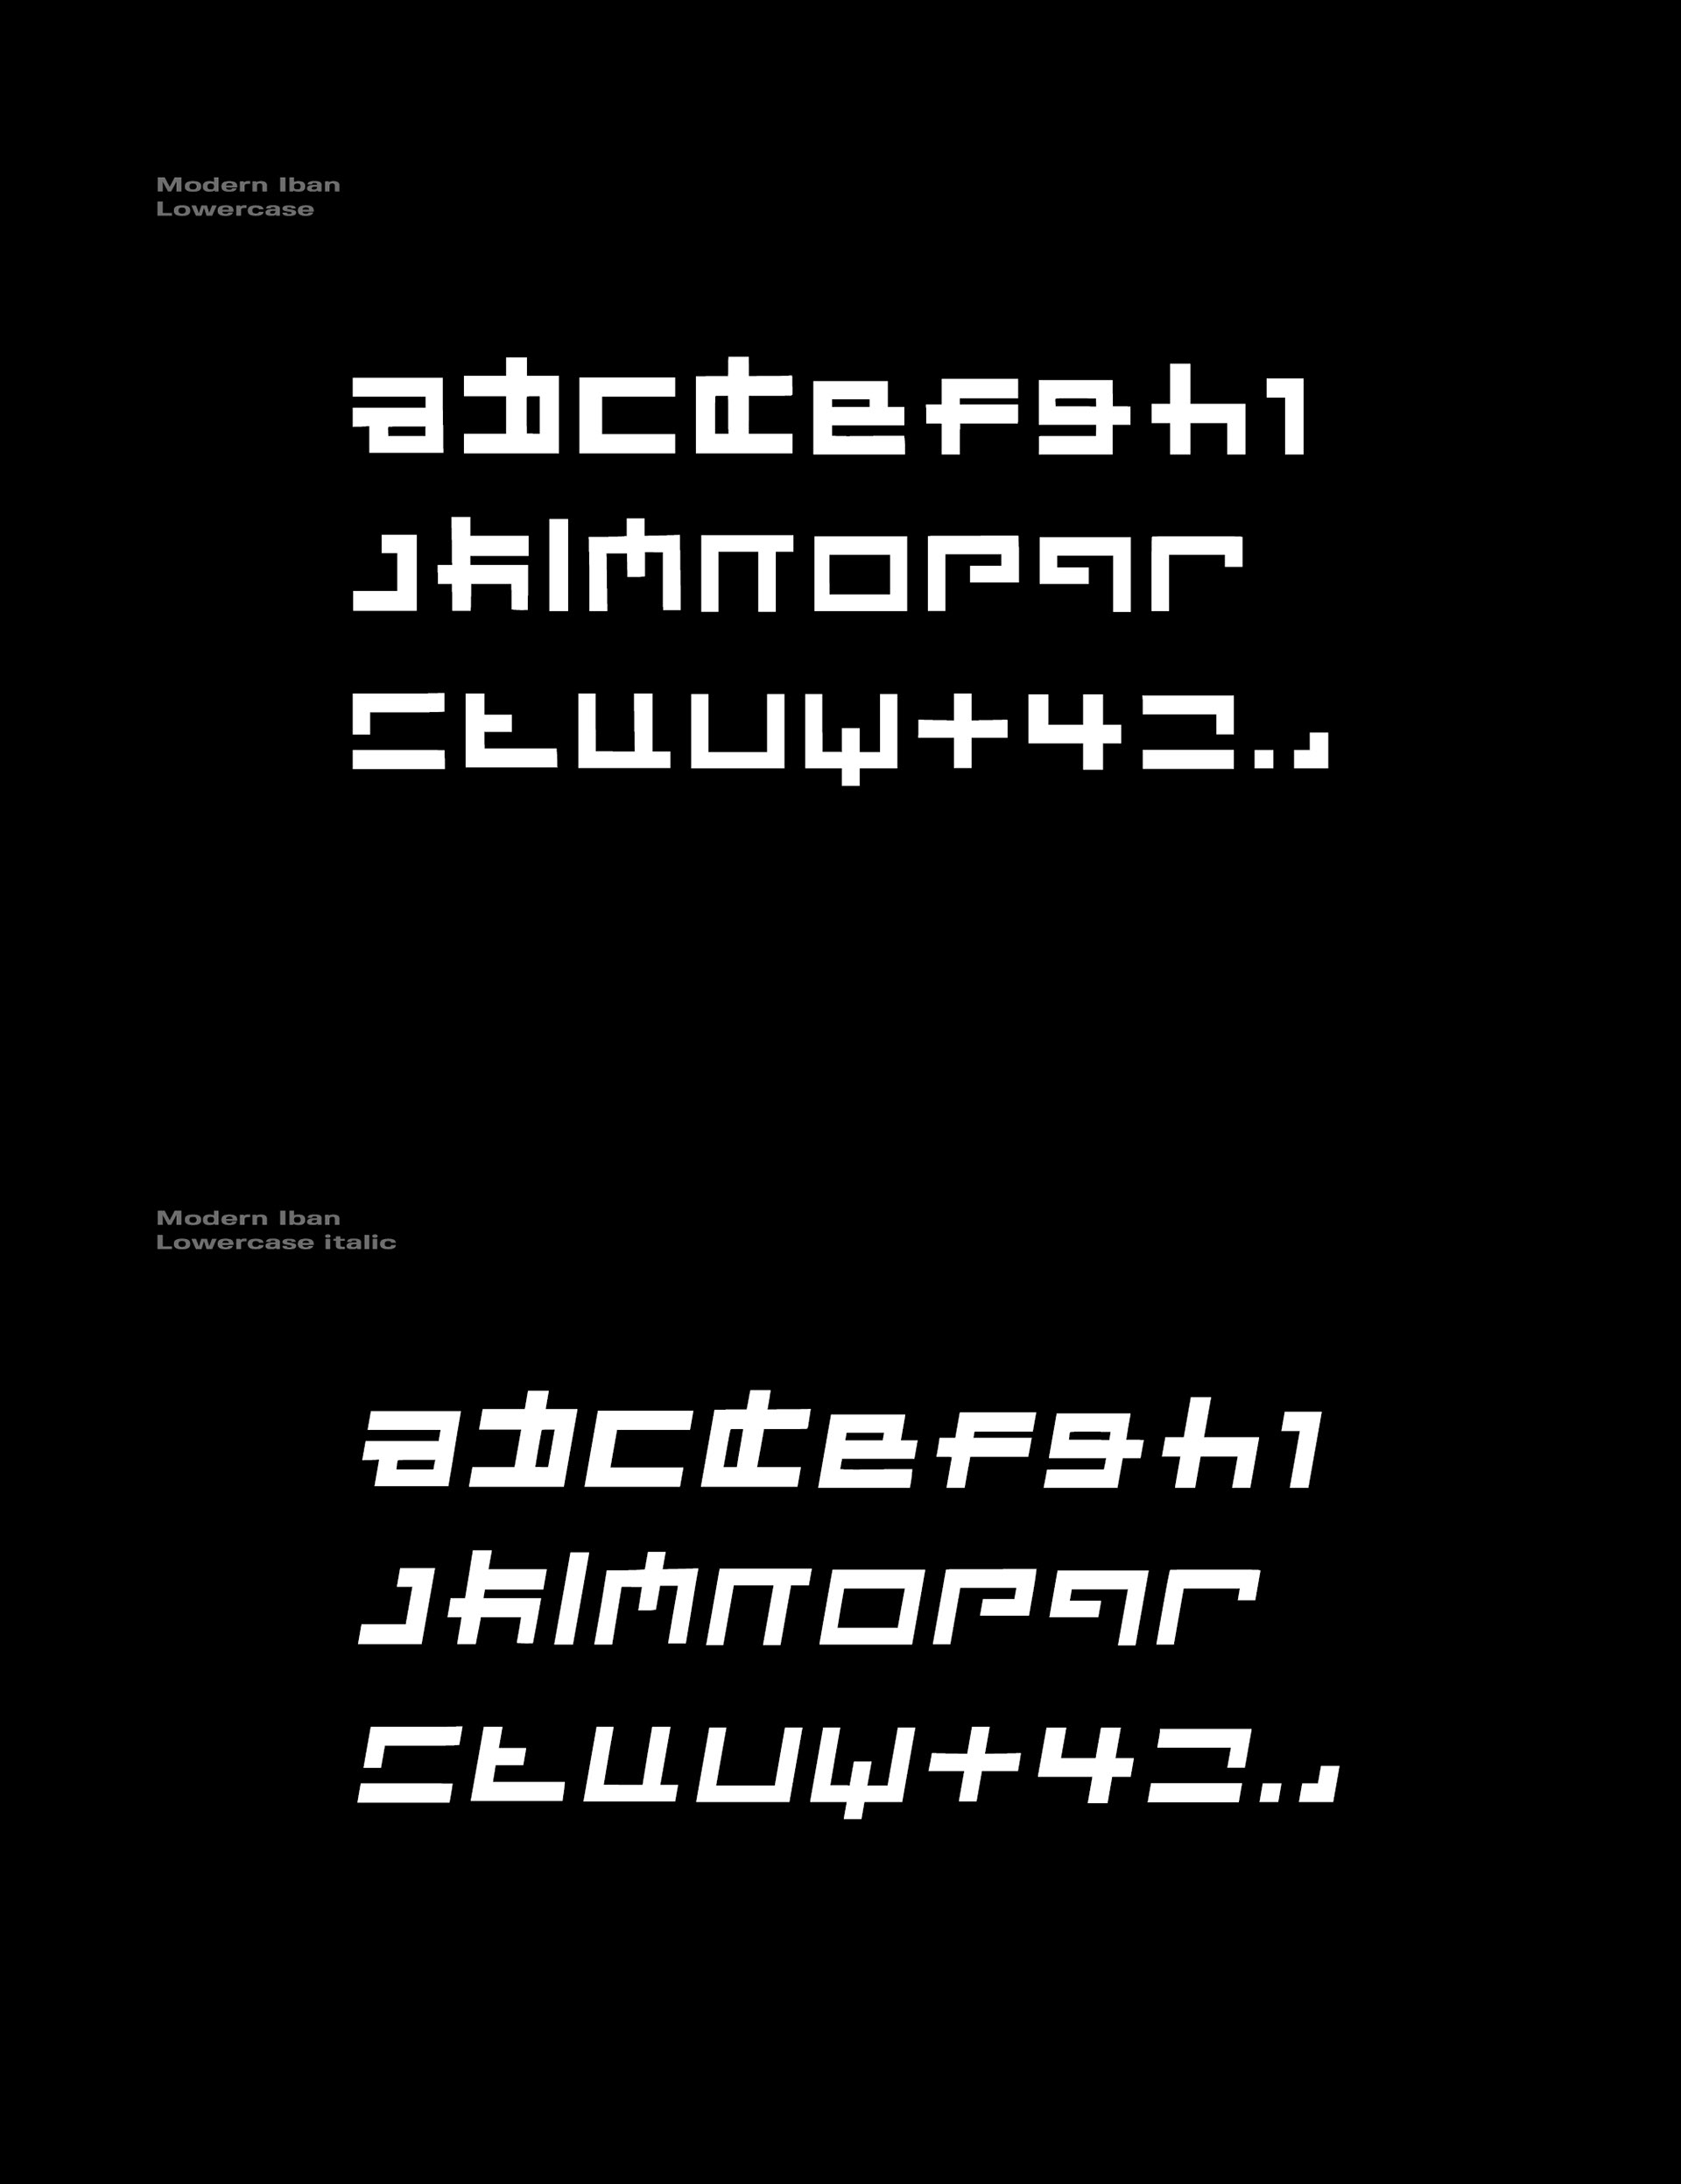 Modern Iban Free Font - decorative-display